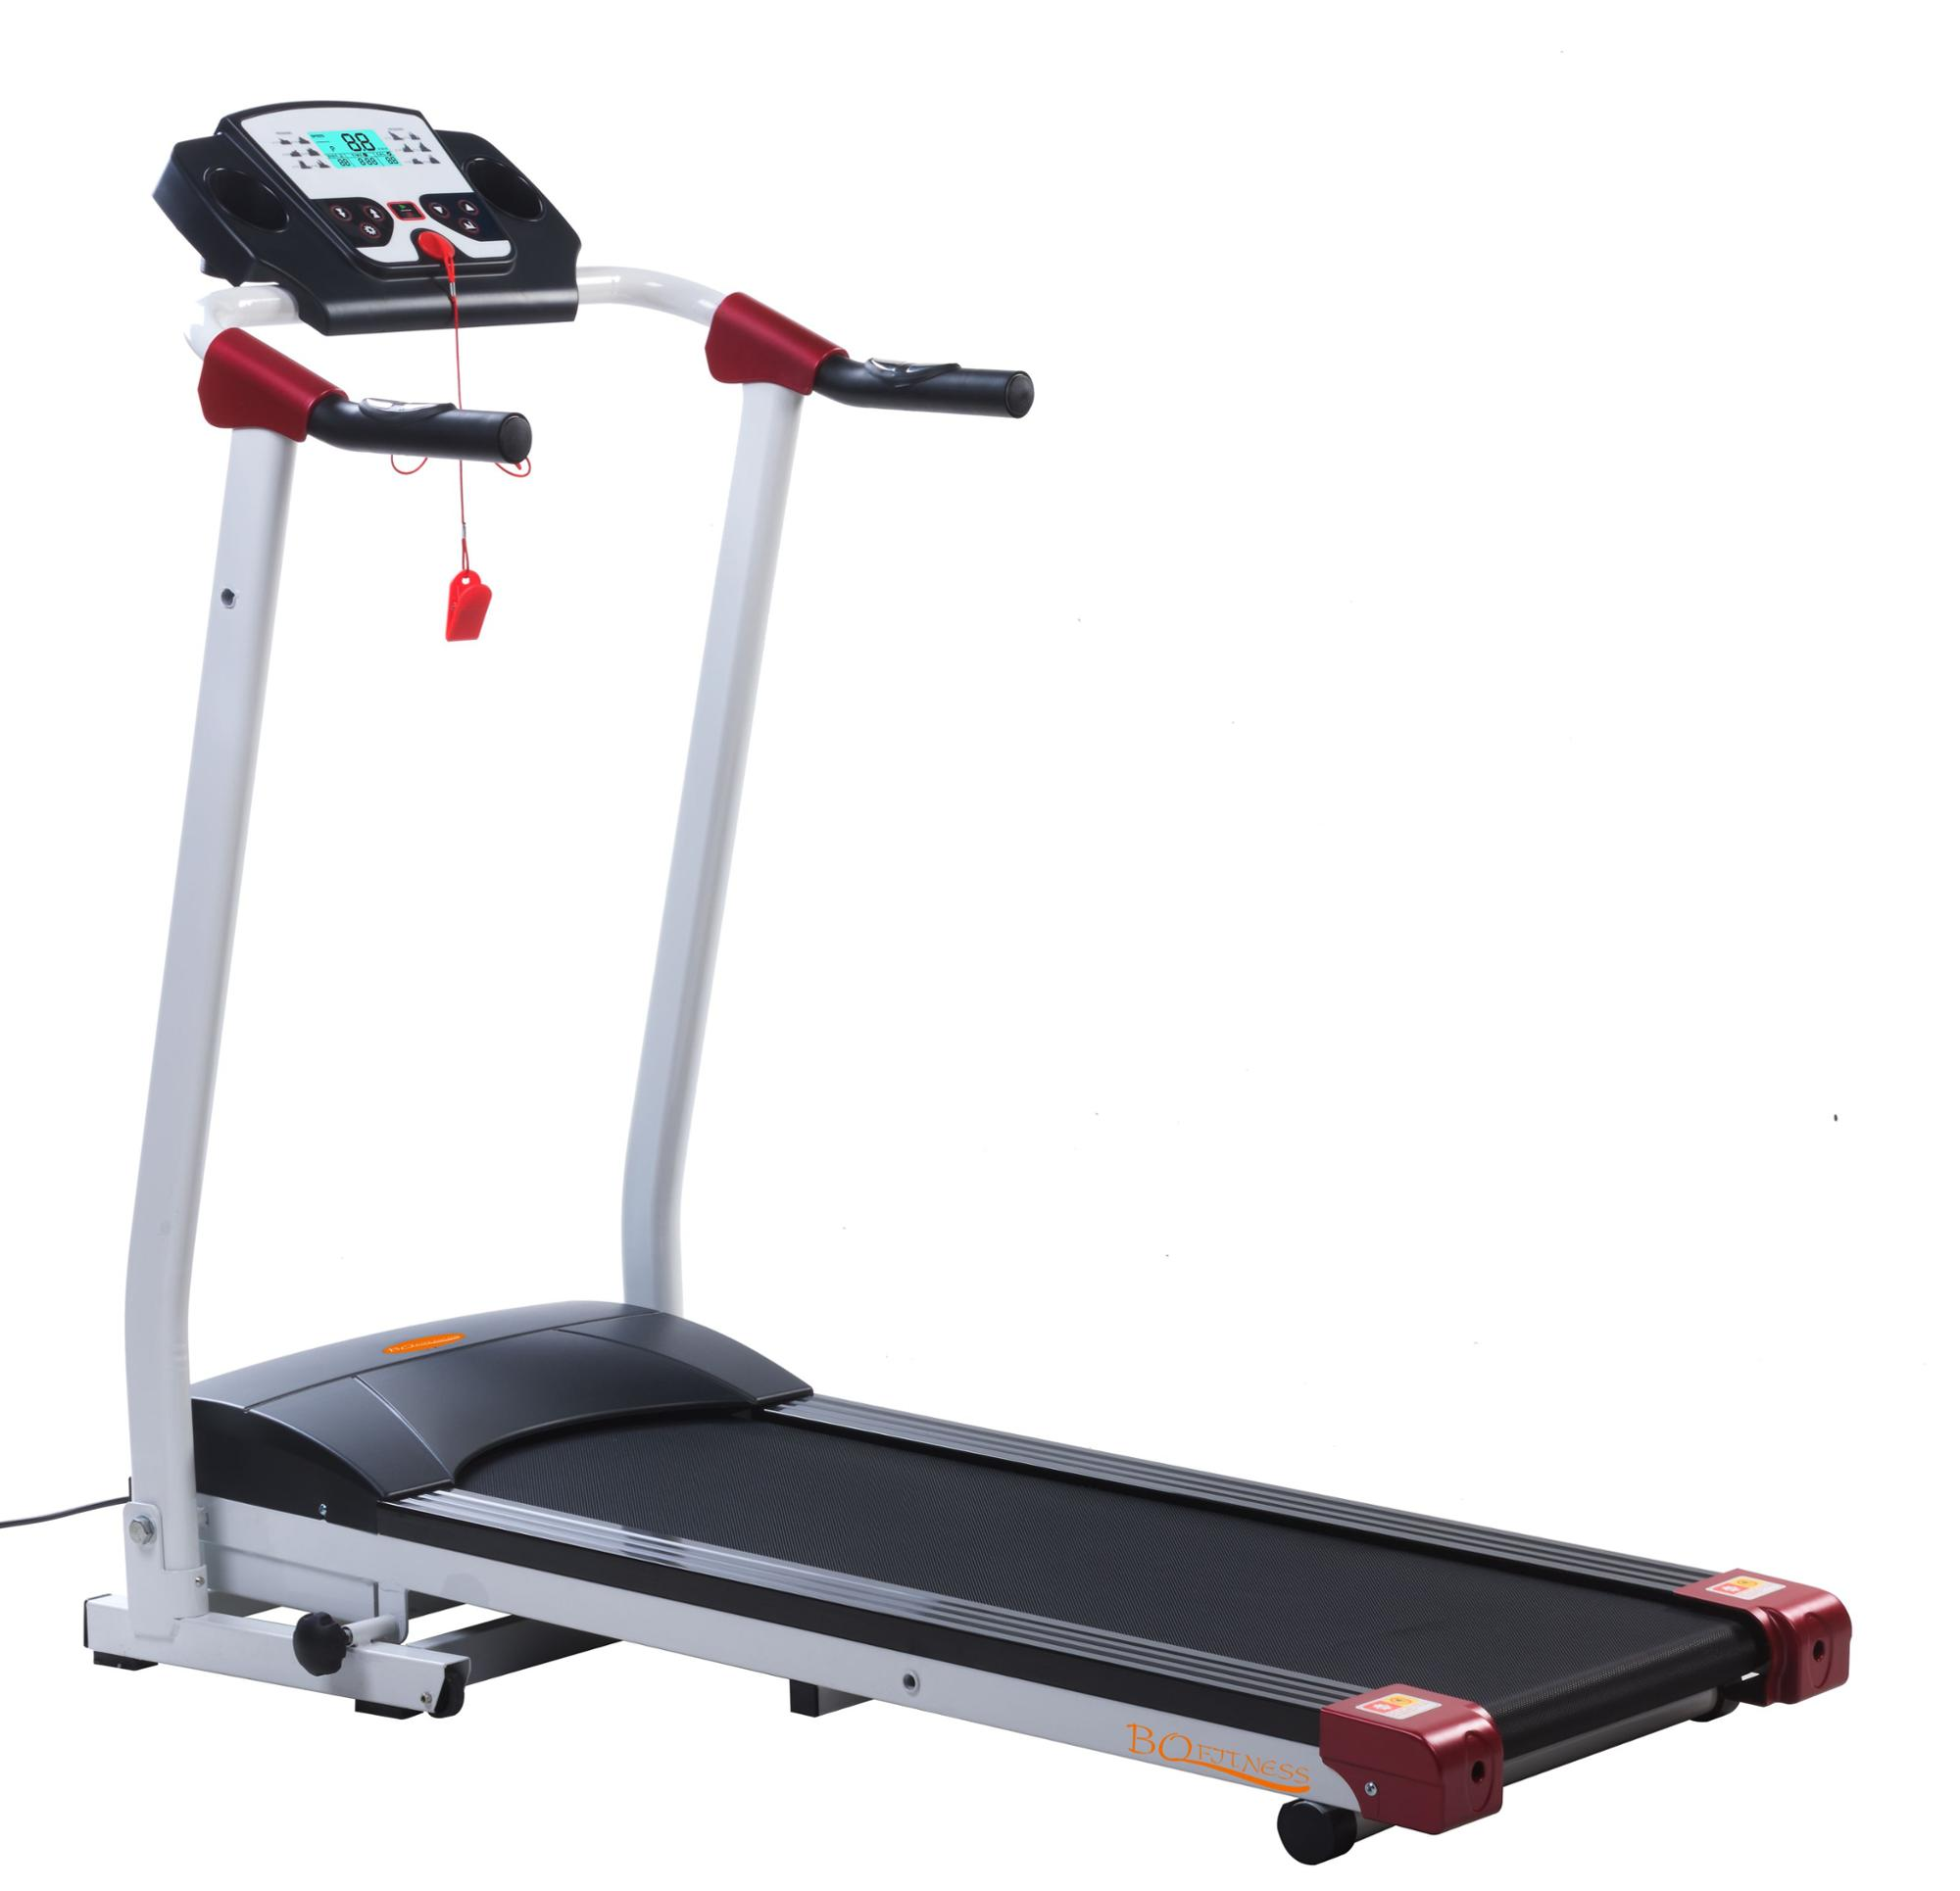 2018 Imported Sporting Goods Life Fitness Equipment Prices Running Machine  Price Treadmill Sale - Buy Treadmill,Running Machine Price,Cheap Motorised